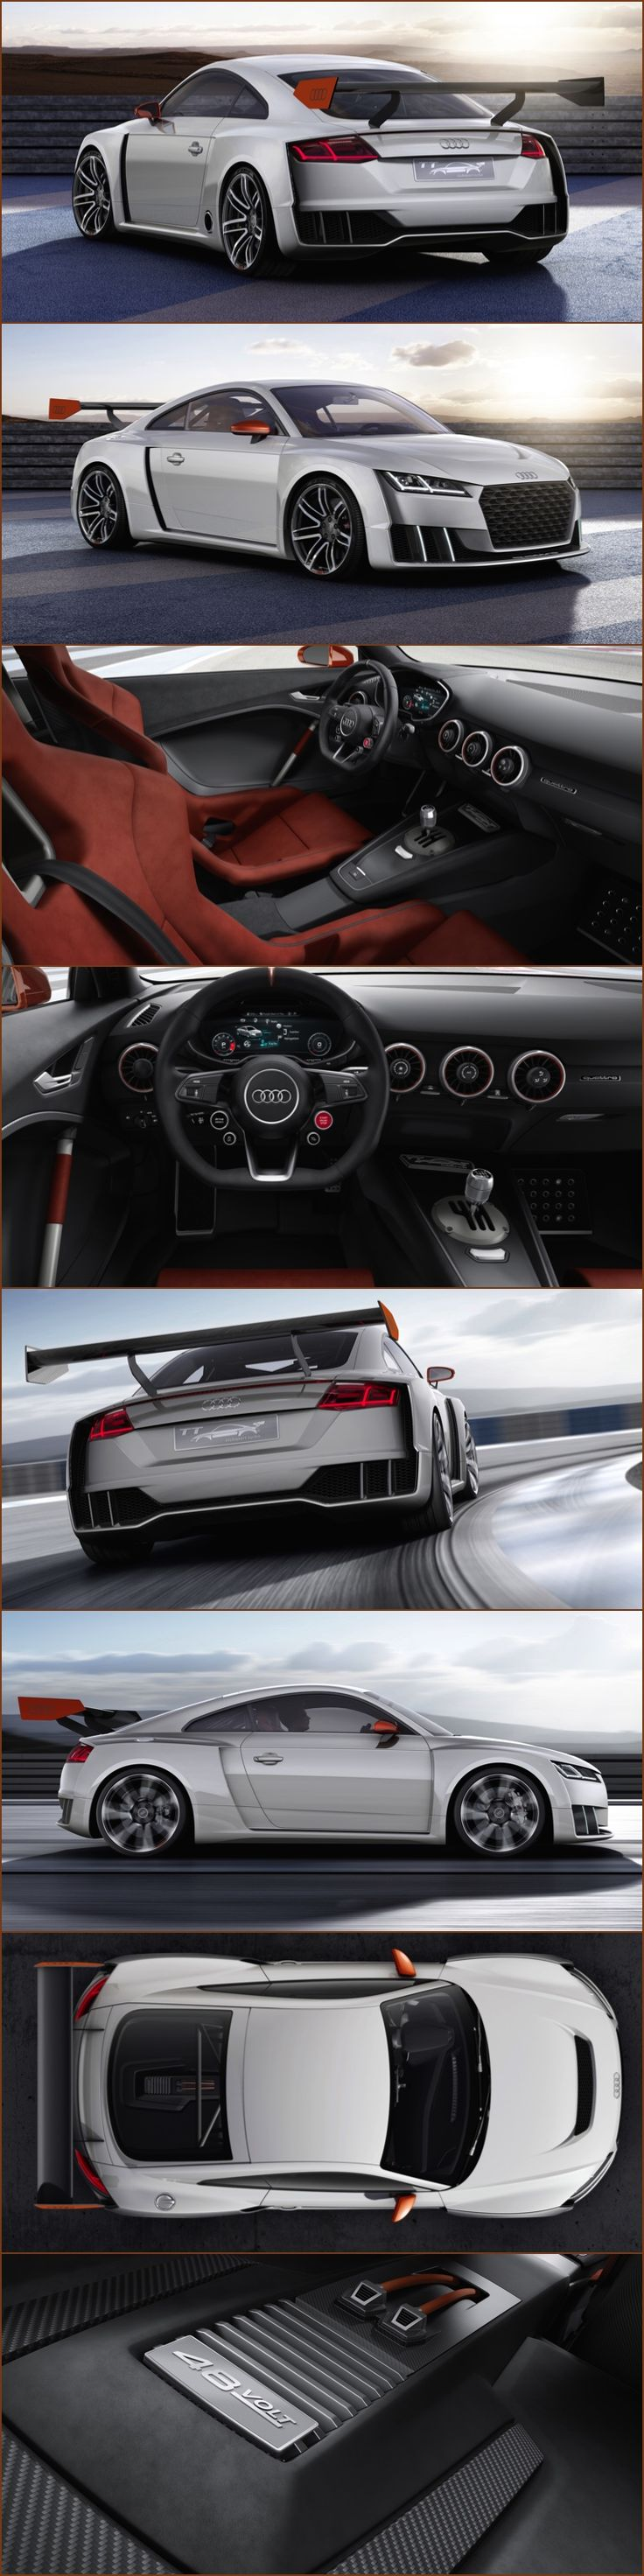 #Audi #TT Concept shows a taste of  the future of turbo power.  First application of electric biturbo propulsion in a TFSI engine and 48v system power.  600PS and 650Nm, 0-62mph in 3.6 seconds and 192mph top speed. Five-cylinder 2.5 TFSI fitted with electric bi-turbo for spontaneous response and torque boost of up to 200Nm quattro all-wheel drive, adjustable coilover suspension and manual transmission with open shift gate, 48-volt electrical system fitted.  #AUDI #TT #Turbo #Conceptcars